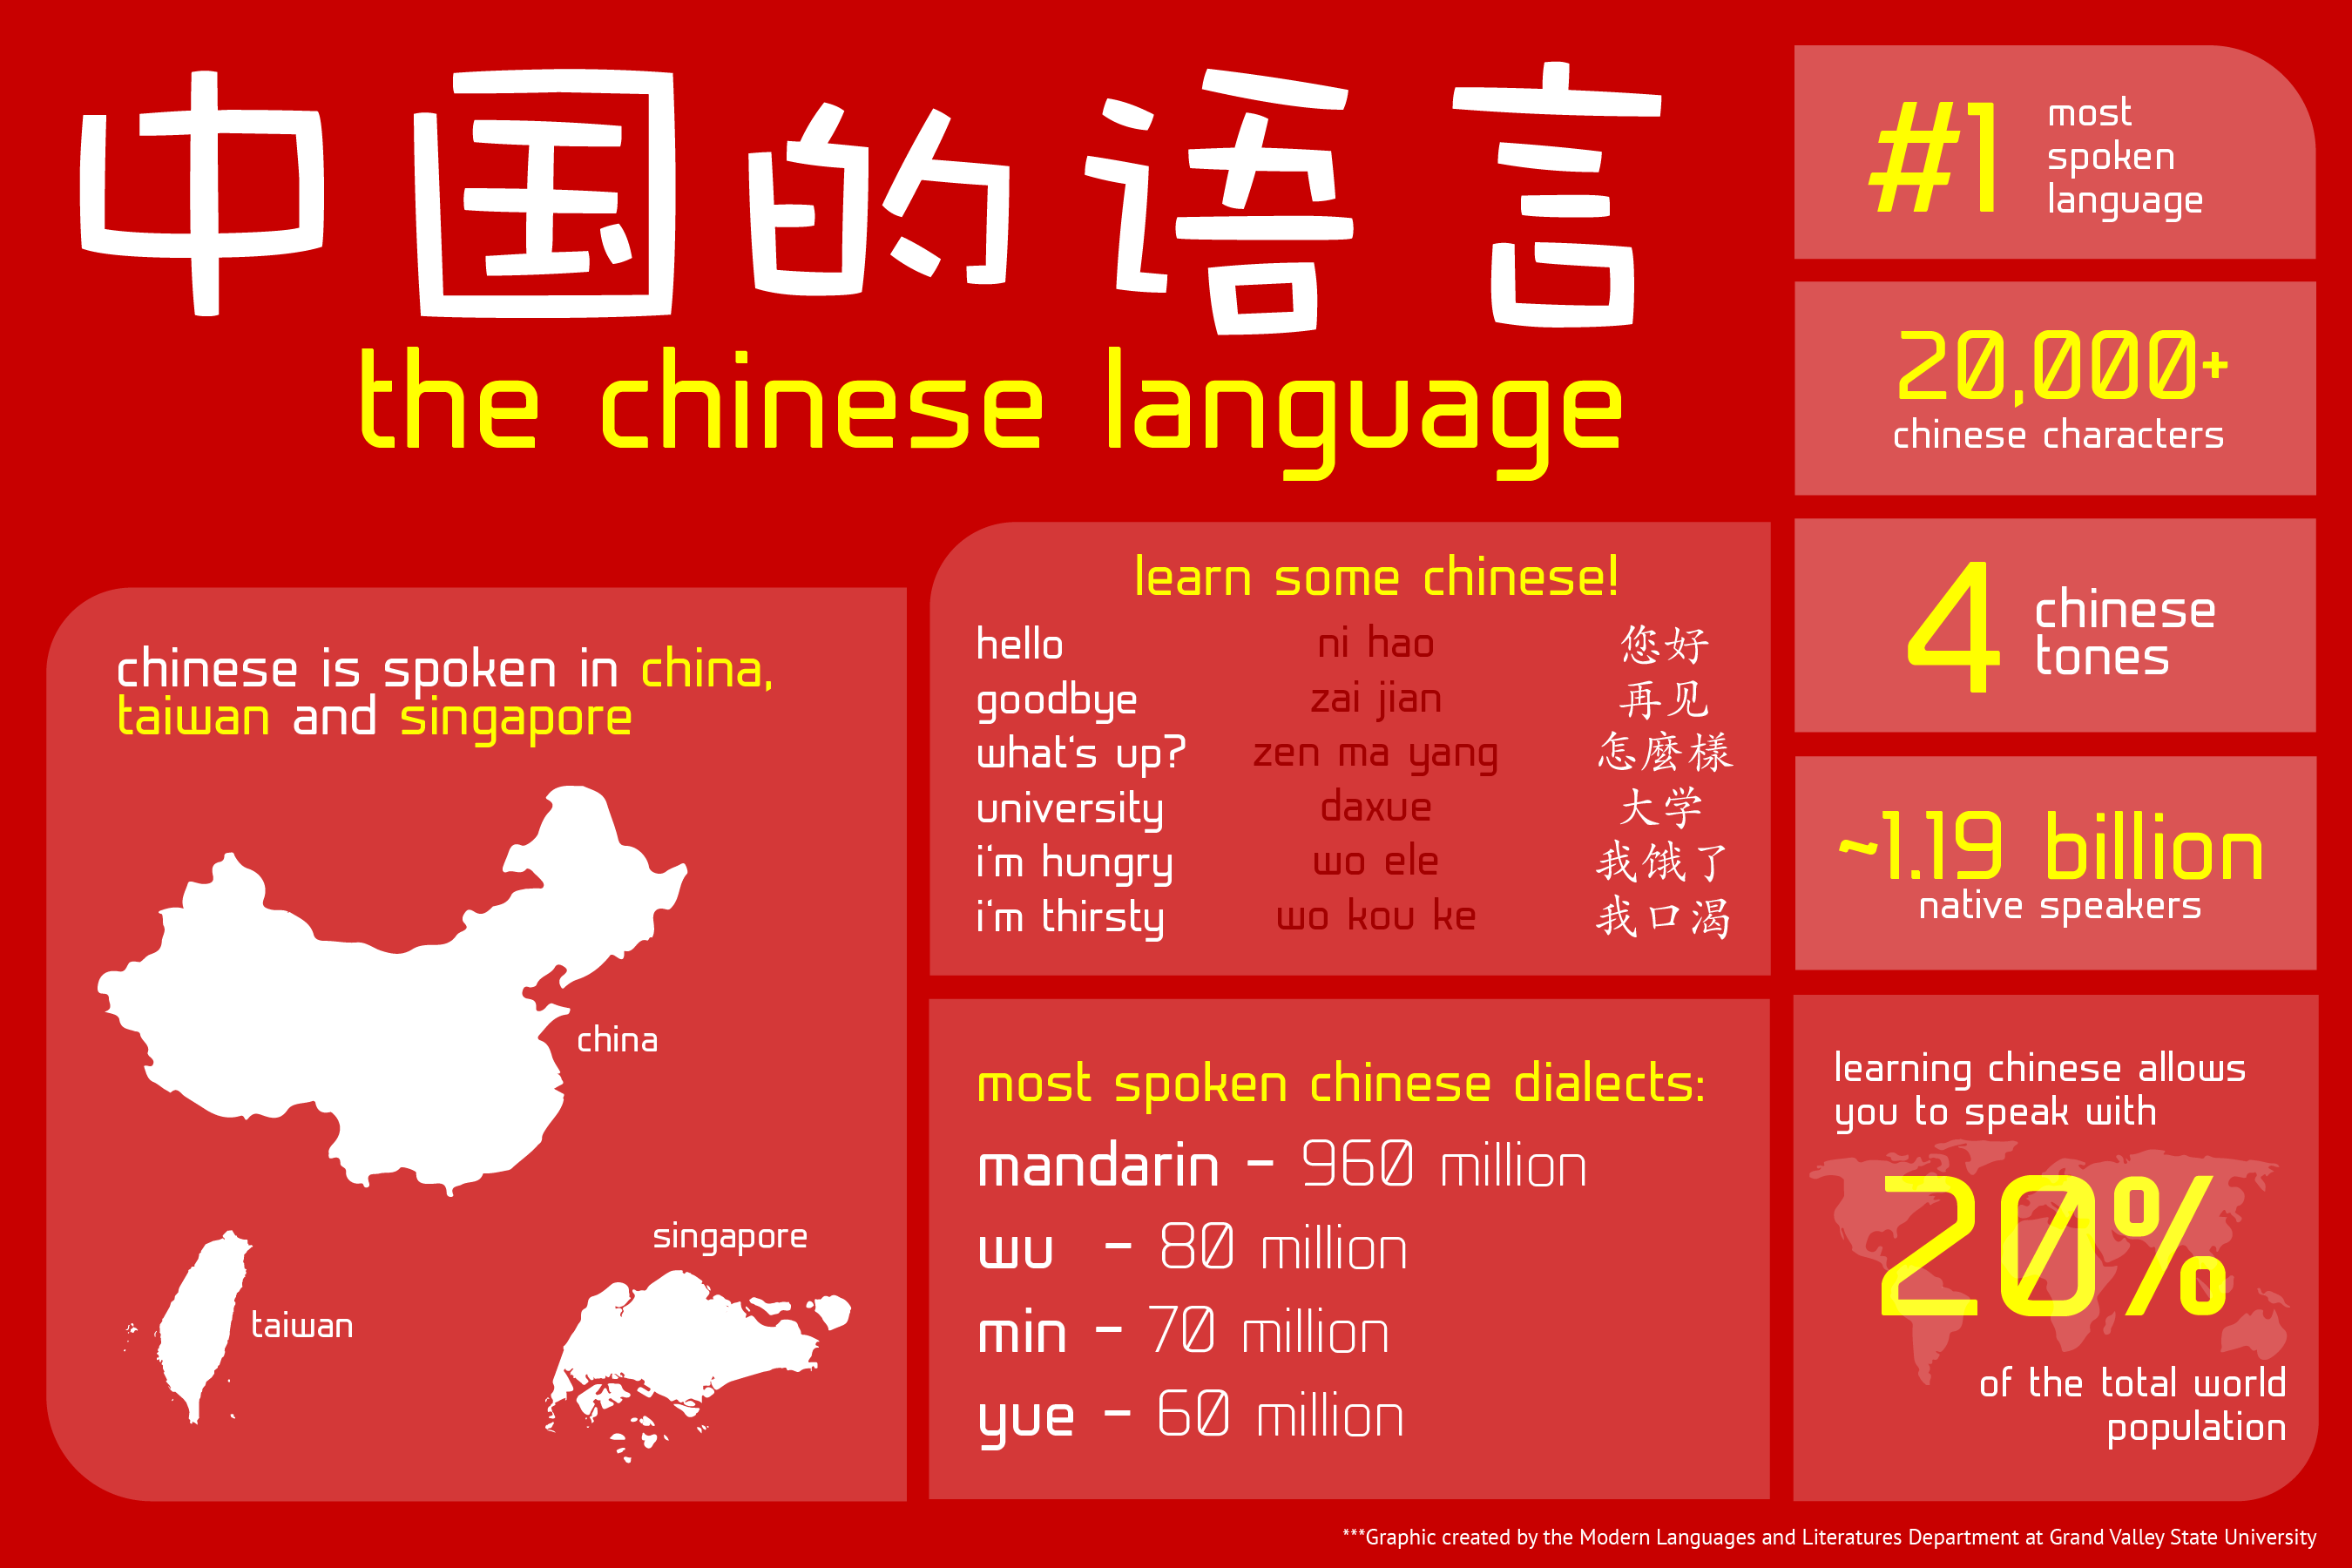 language reform in modern china Language reform is a type of language planning by massive change to a language the usual tools of language reform are simplification and purification simplification makes the language easier to use by regularizing vocabulary, grammar, or spelling purification makes the language conform to a version of the language.